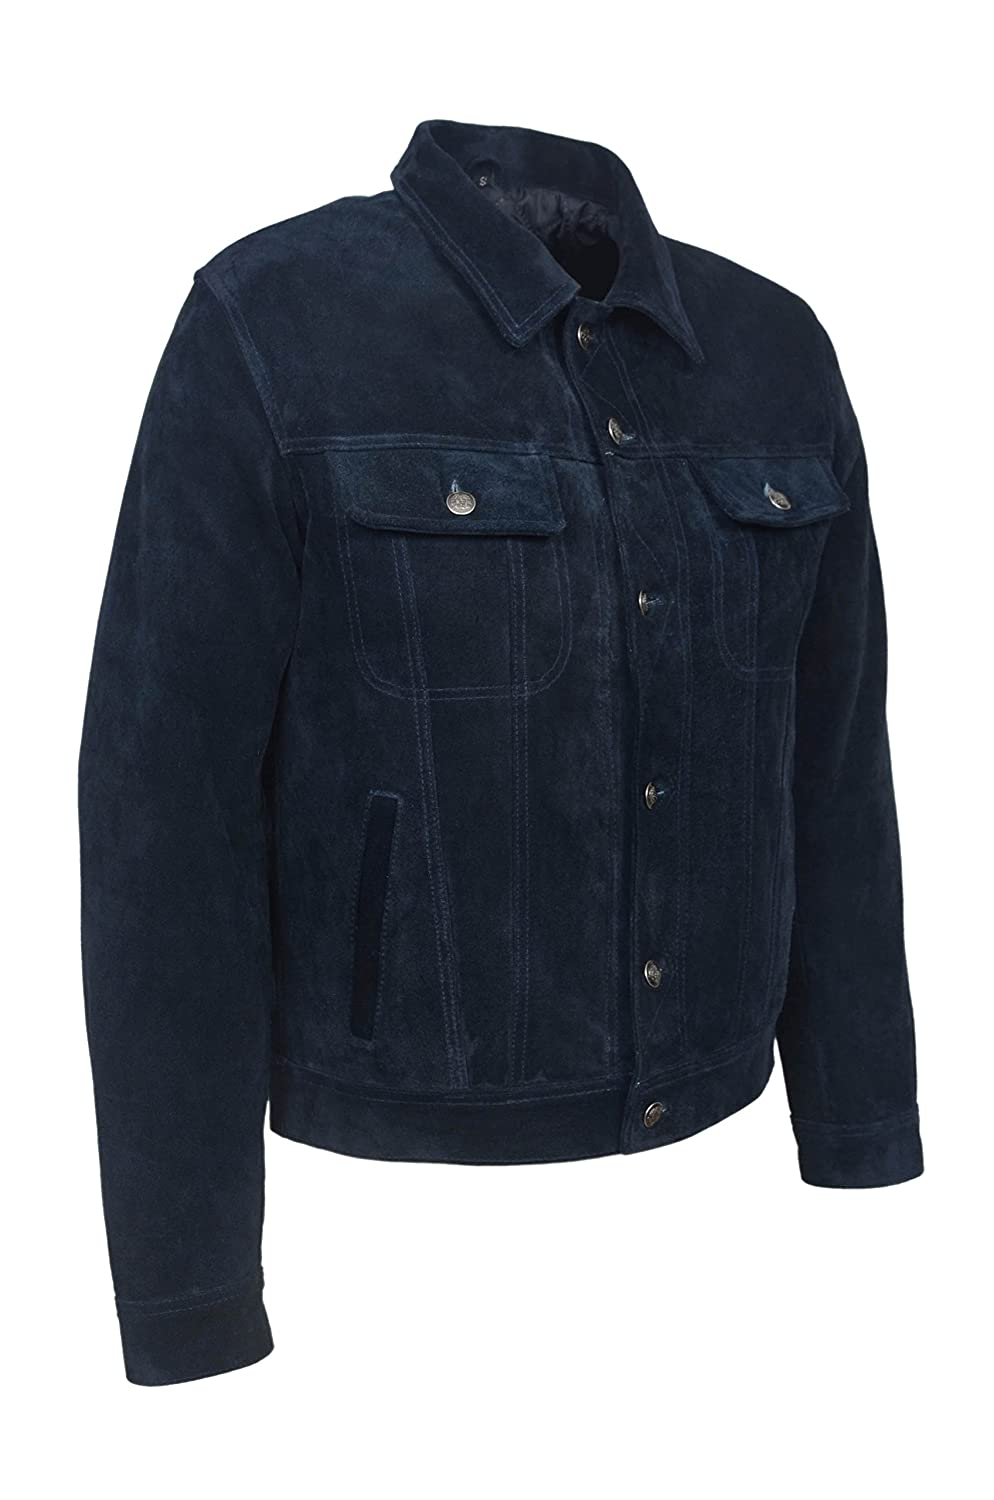 'TRUCKER' New Men's Navy Blue Suede Classic Real Cowhide Western Leather Jacket